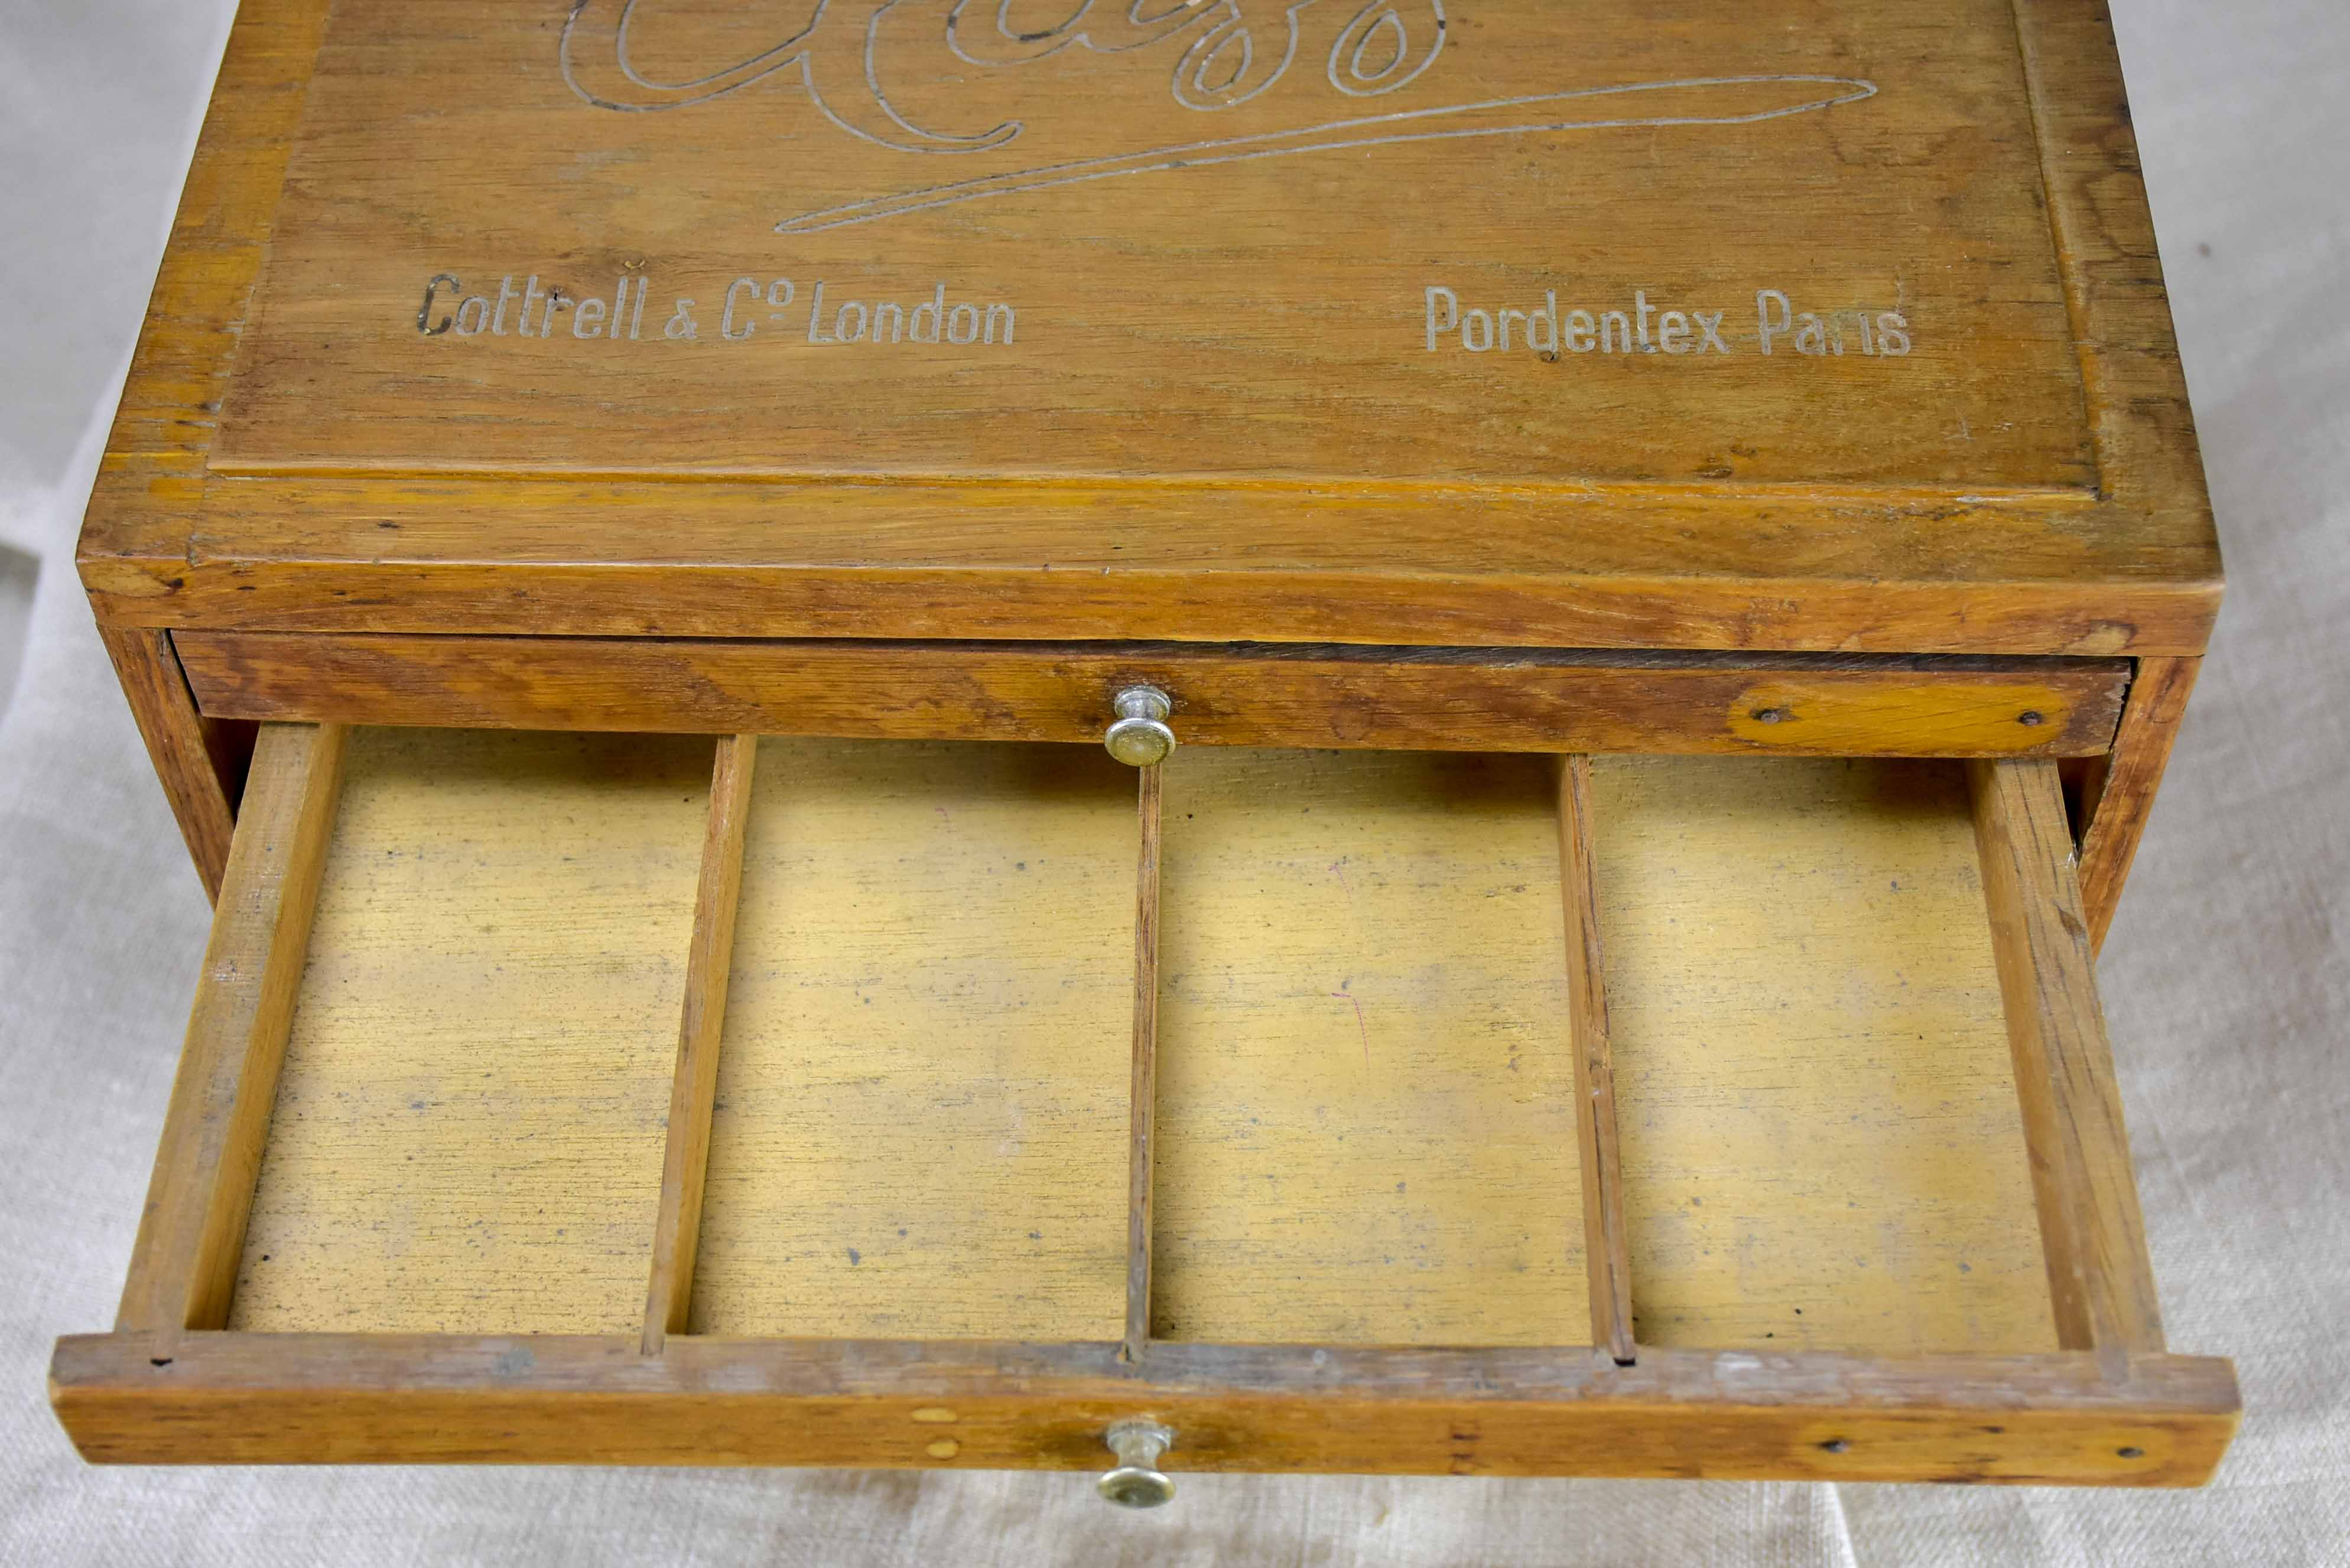 Vintage set of Dentist's drawers for prosthetic teeth